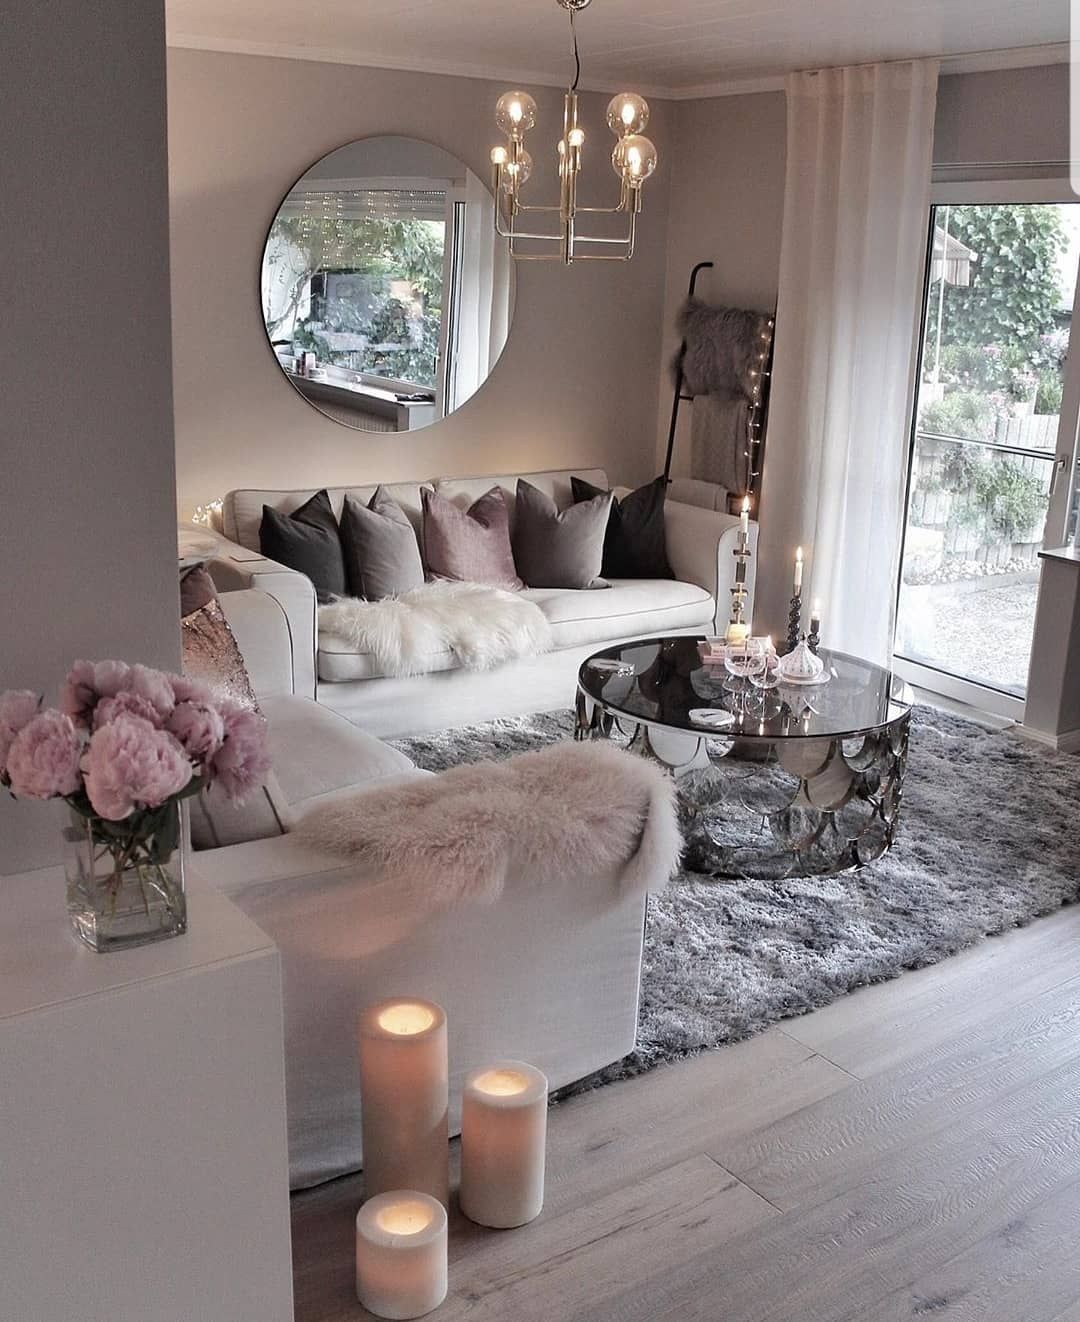 Top 70+ Home Design Trends in 2020 in 2020 (With images ...